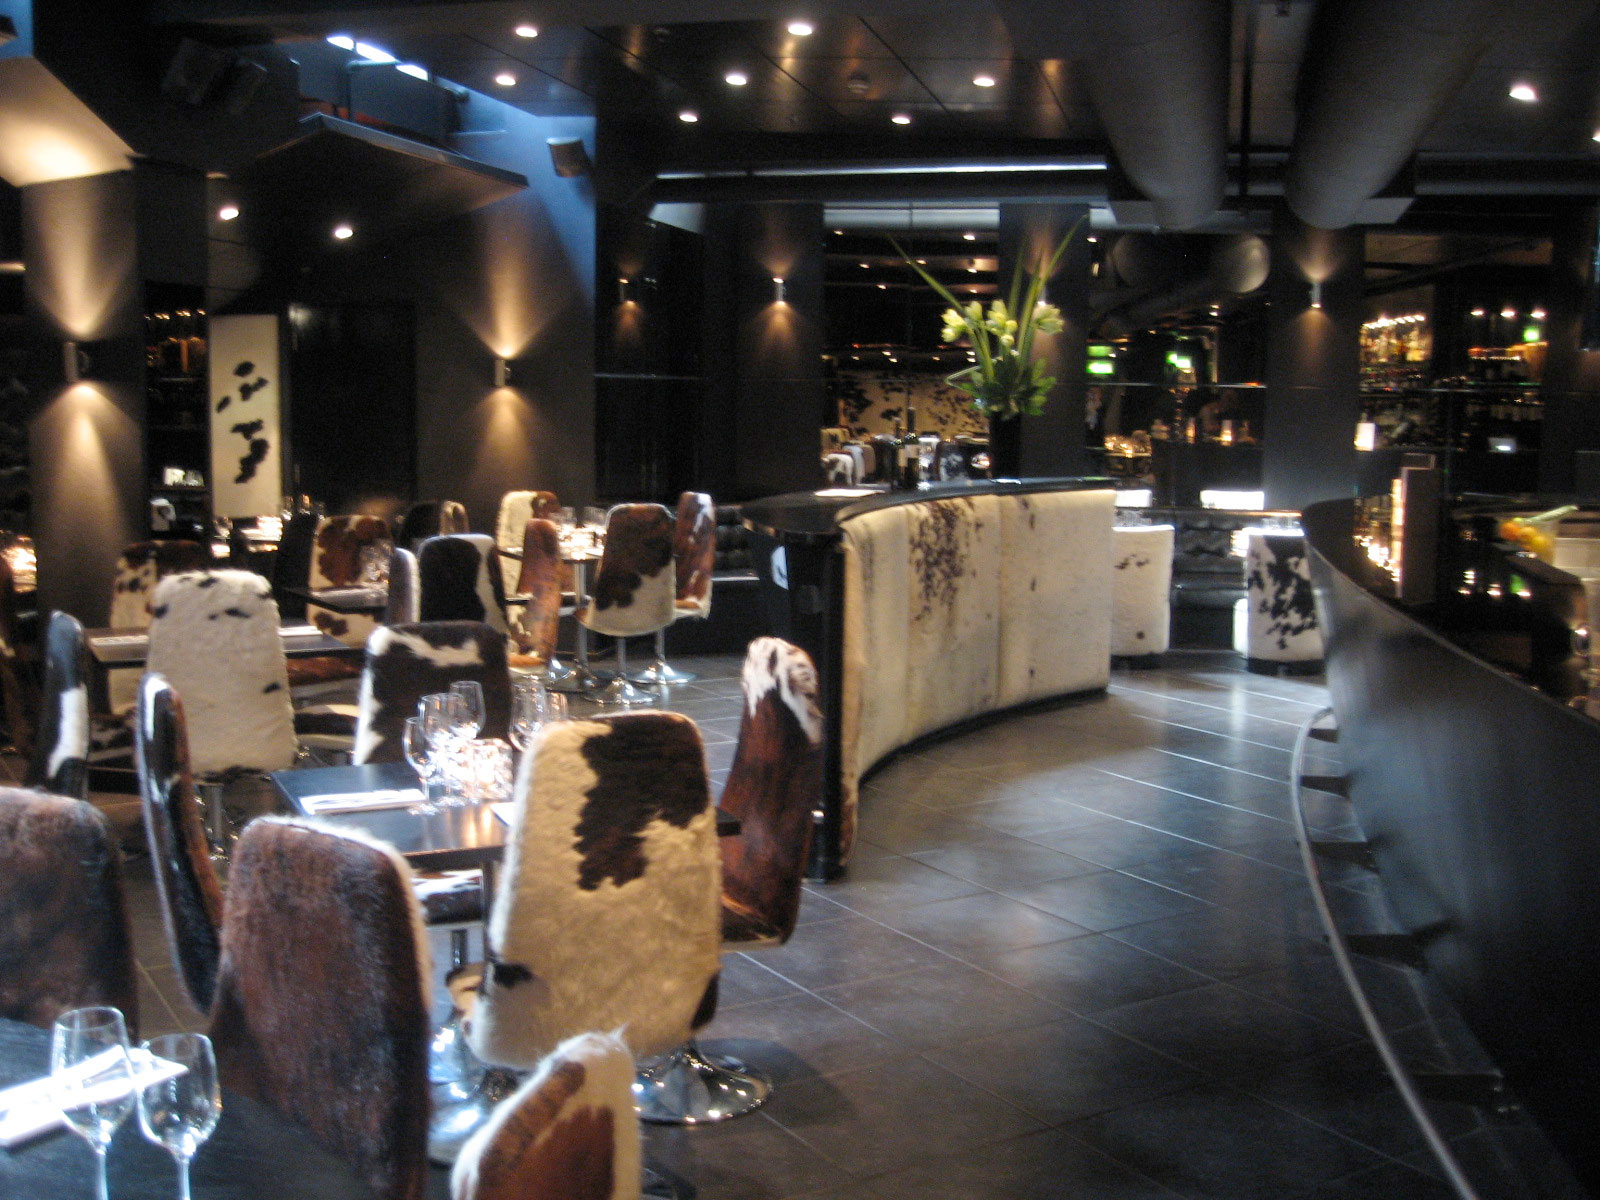 Private dining rooms the best places to eat near tower bridge for Best private dining rooms city of london